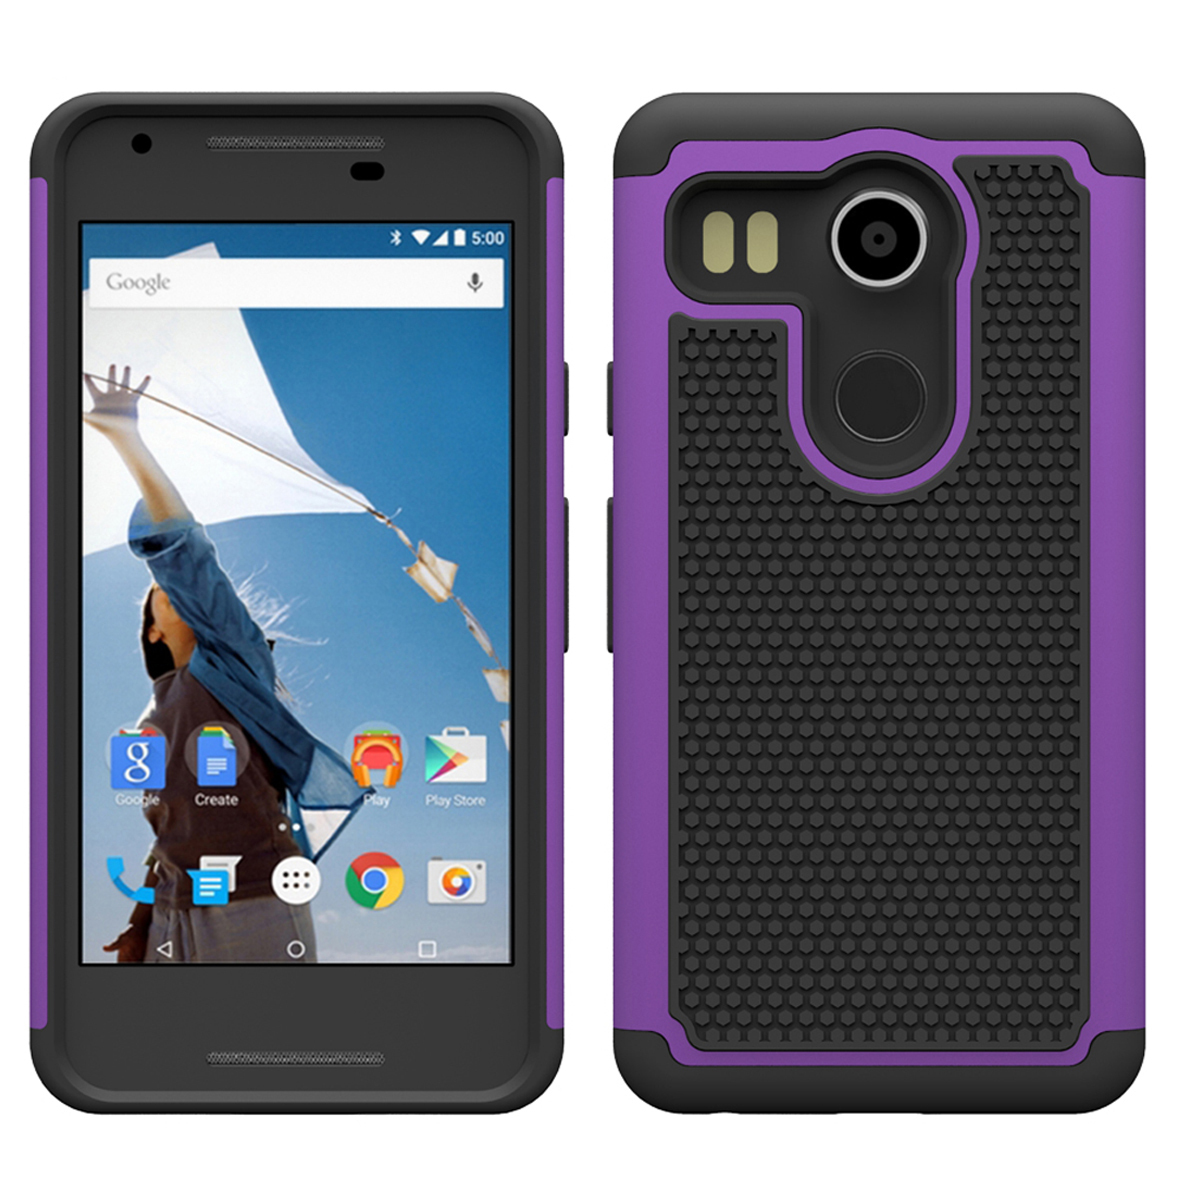 Hock absorbing dual layer hybrid protective armor case for lg nexus 5x purple p20151116160118214